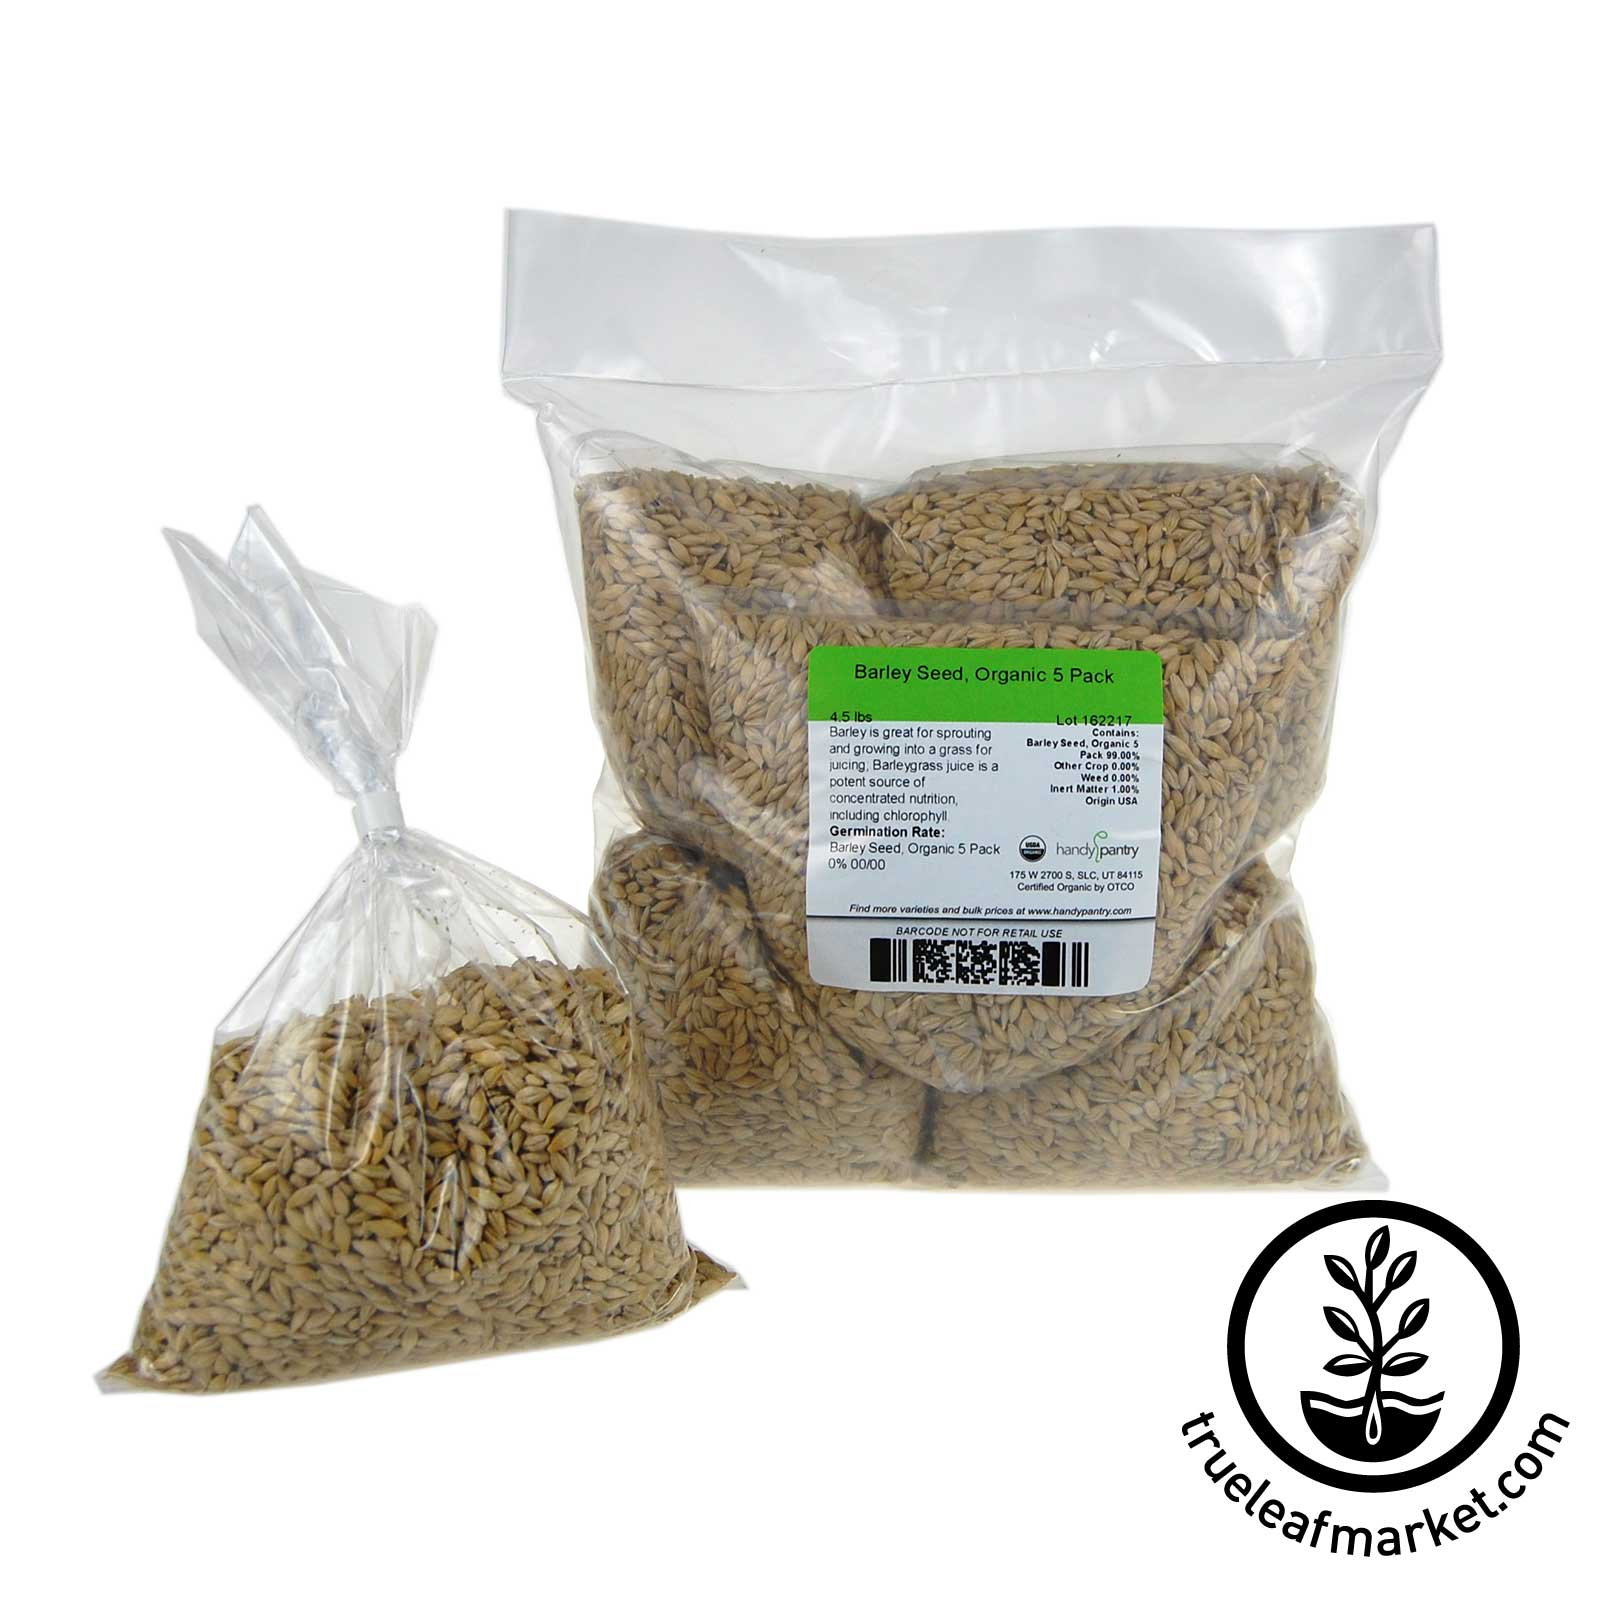 5 Pack of Pre-Measured Barley Grass Seed - For 21x11 Tray.